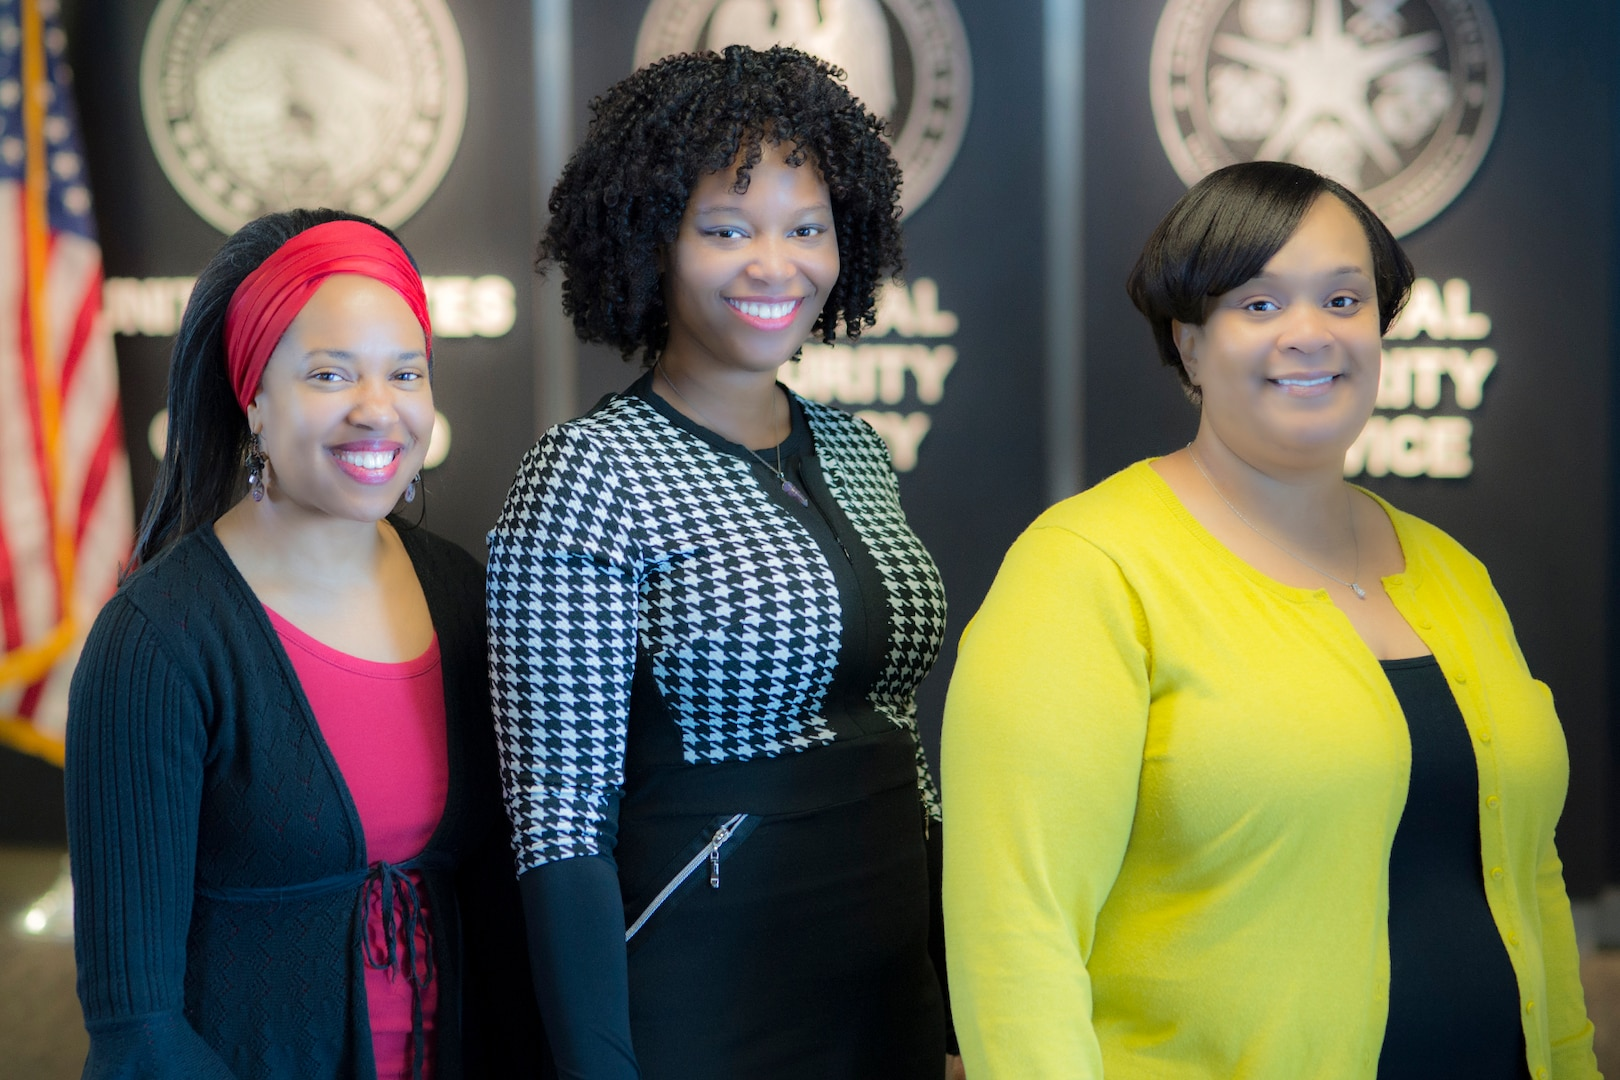 (L to R) Dr. Valerie Nelson, Dr. Aziza Jefferson, and Dr. Philicity Williams